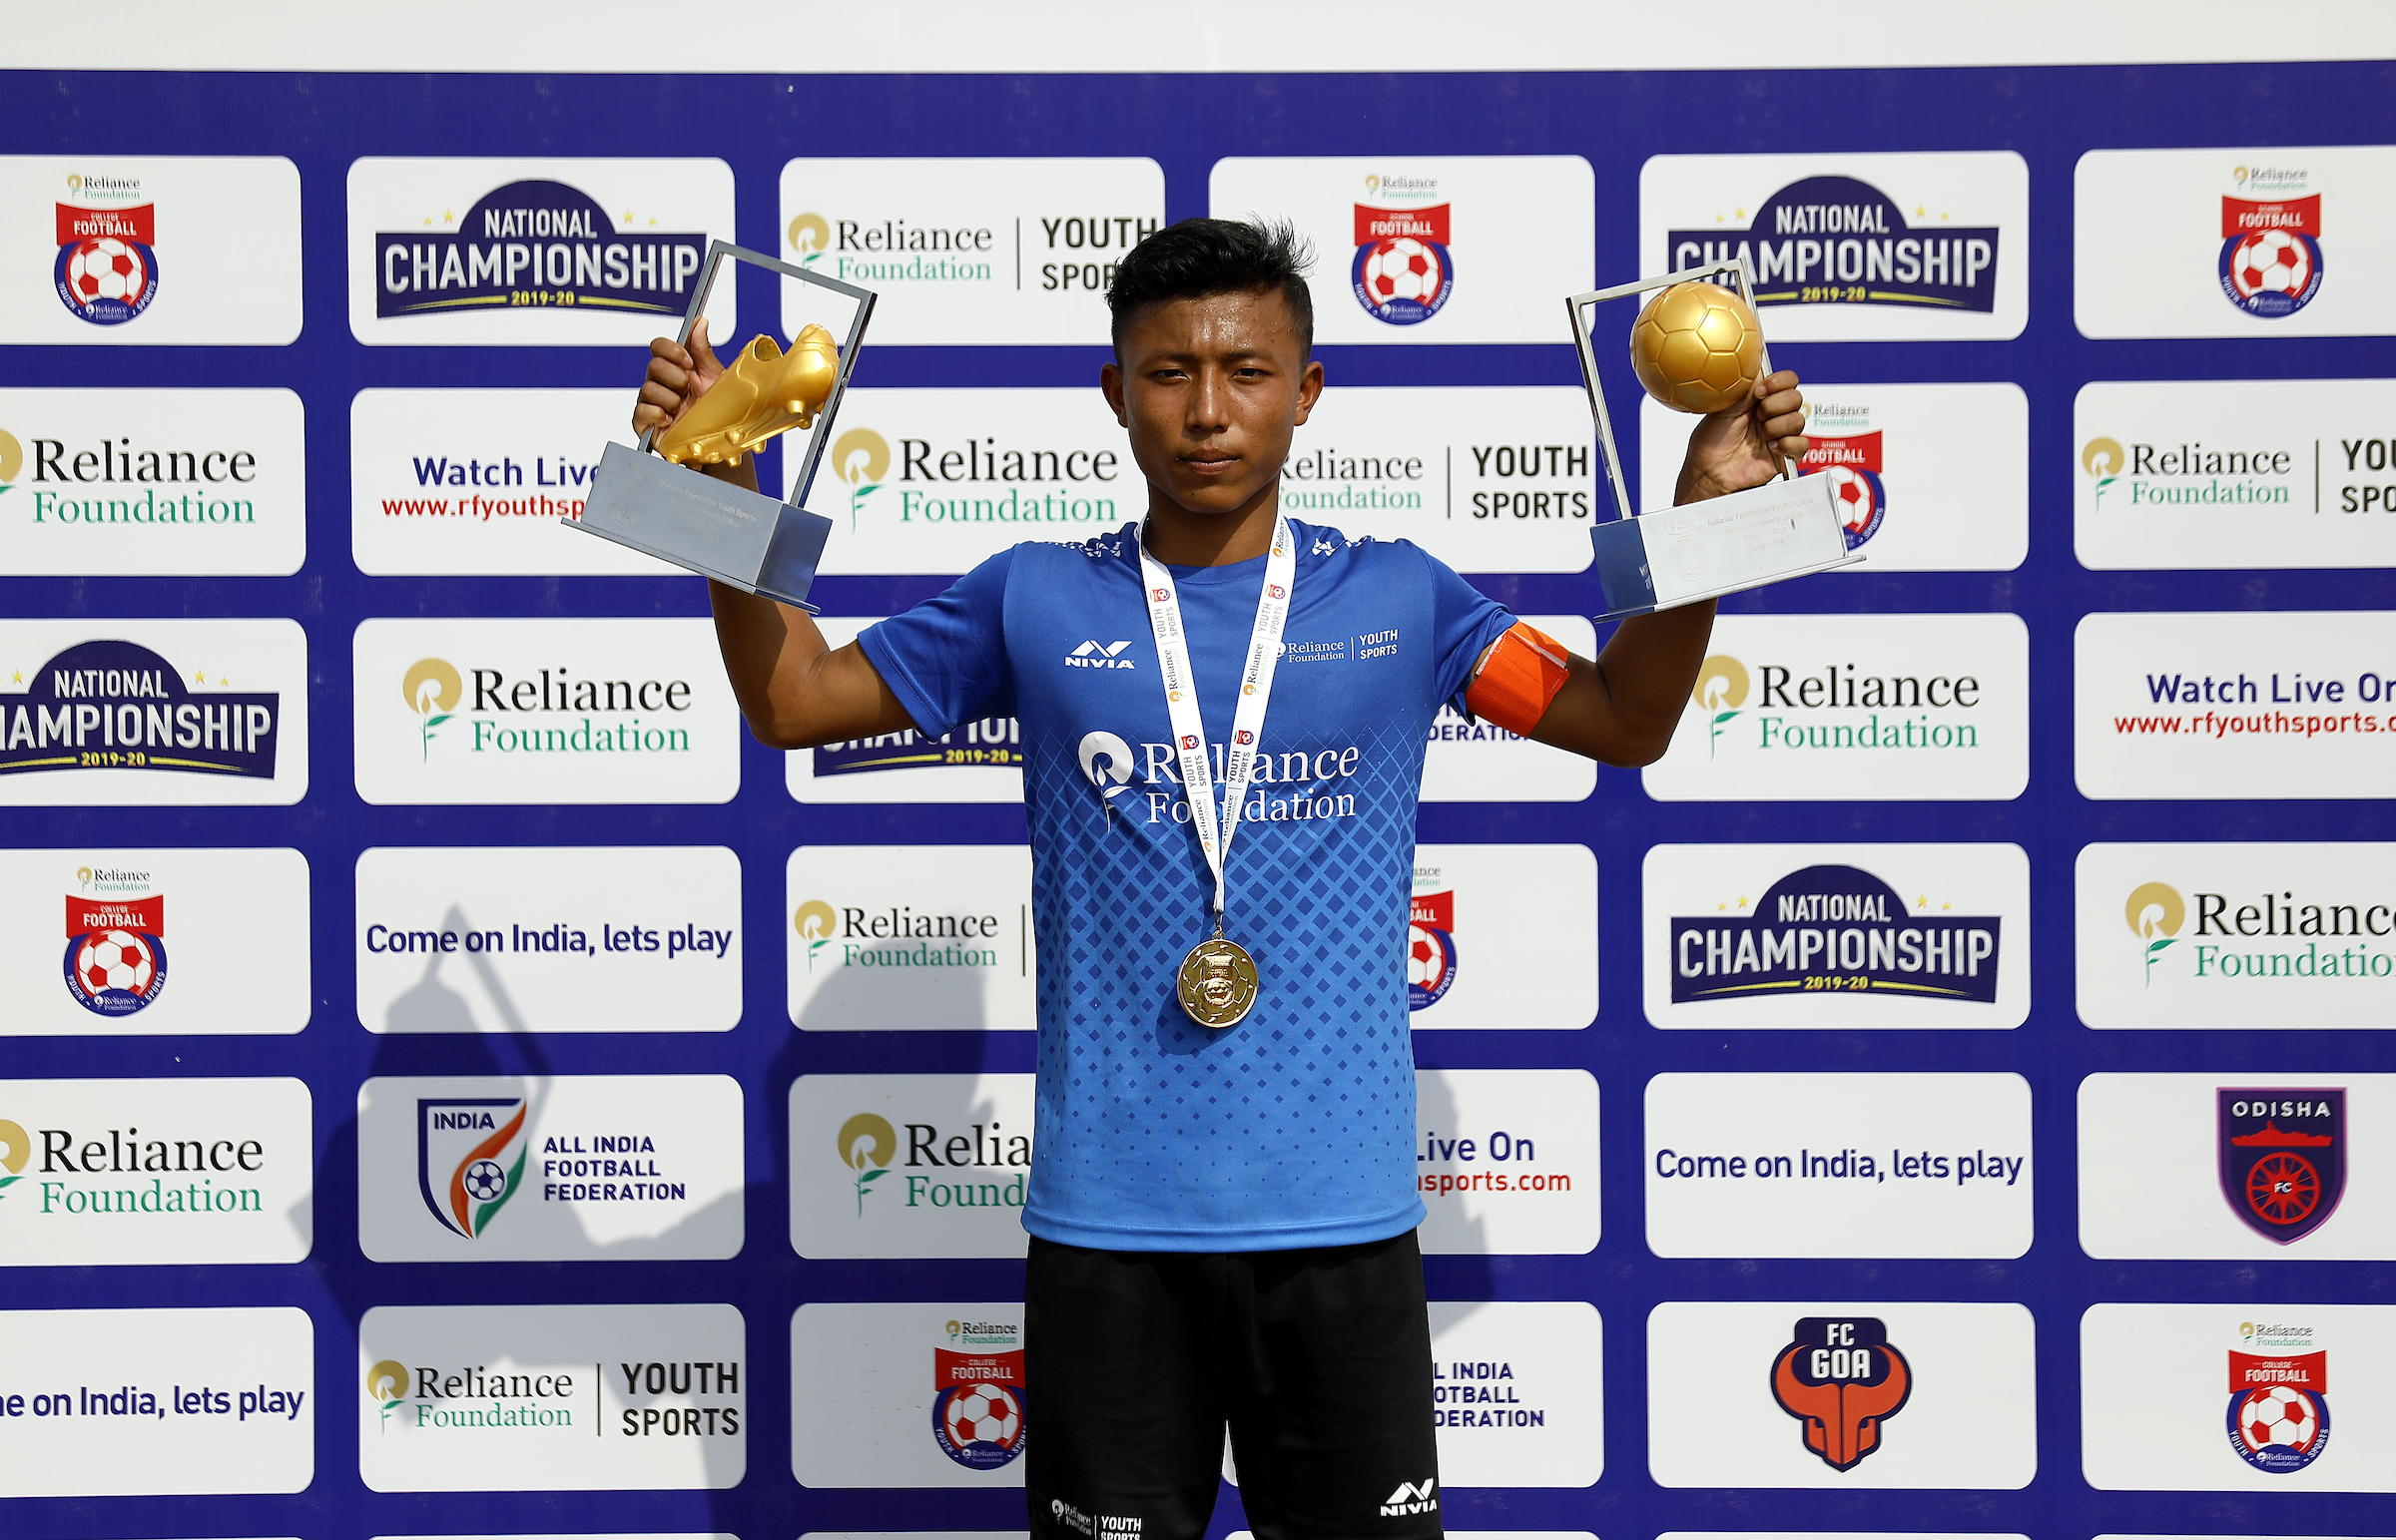 IMPHAL BOY WON GOLDEN BALL & GOLDEN BOOT AT NATIONAL CHAMPIONSHIPS